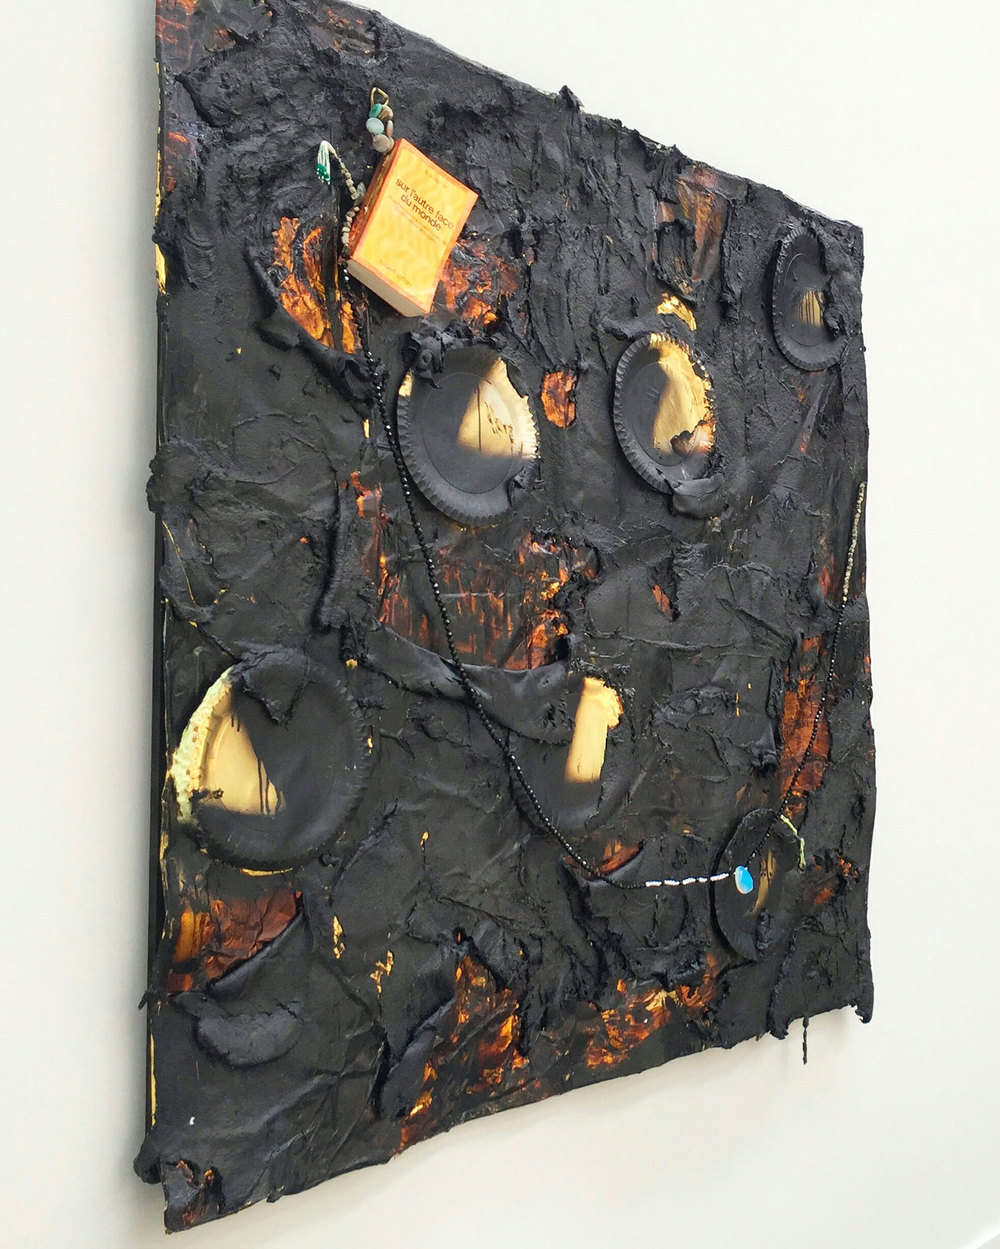 The City of Gold and Lepers , 3 lions in the desert  2016 | 170 X 164 CM  Gesso, packaging laminated gold paper, laminated cardboard gold plate, Elastic Bitumen Mastic, speak black glass, synthetic sea sponge, stainless steel cable, Book. At Circle of Life ( Curated by: Carmit Blumensohn ), NordArt 2016, Büdelsdorf, Germany